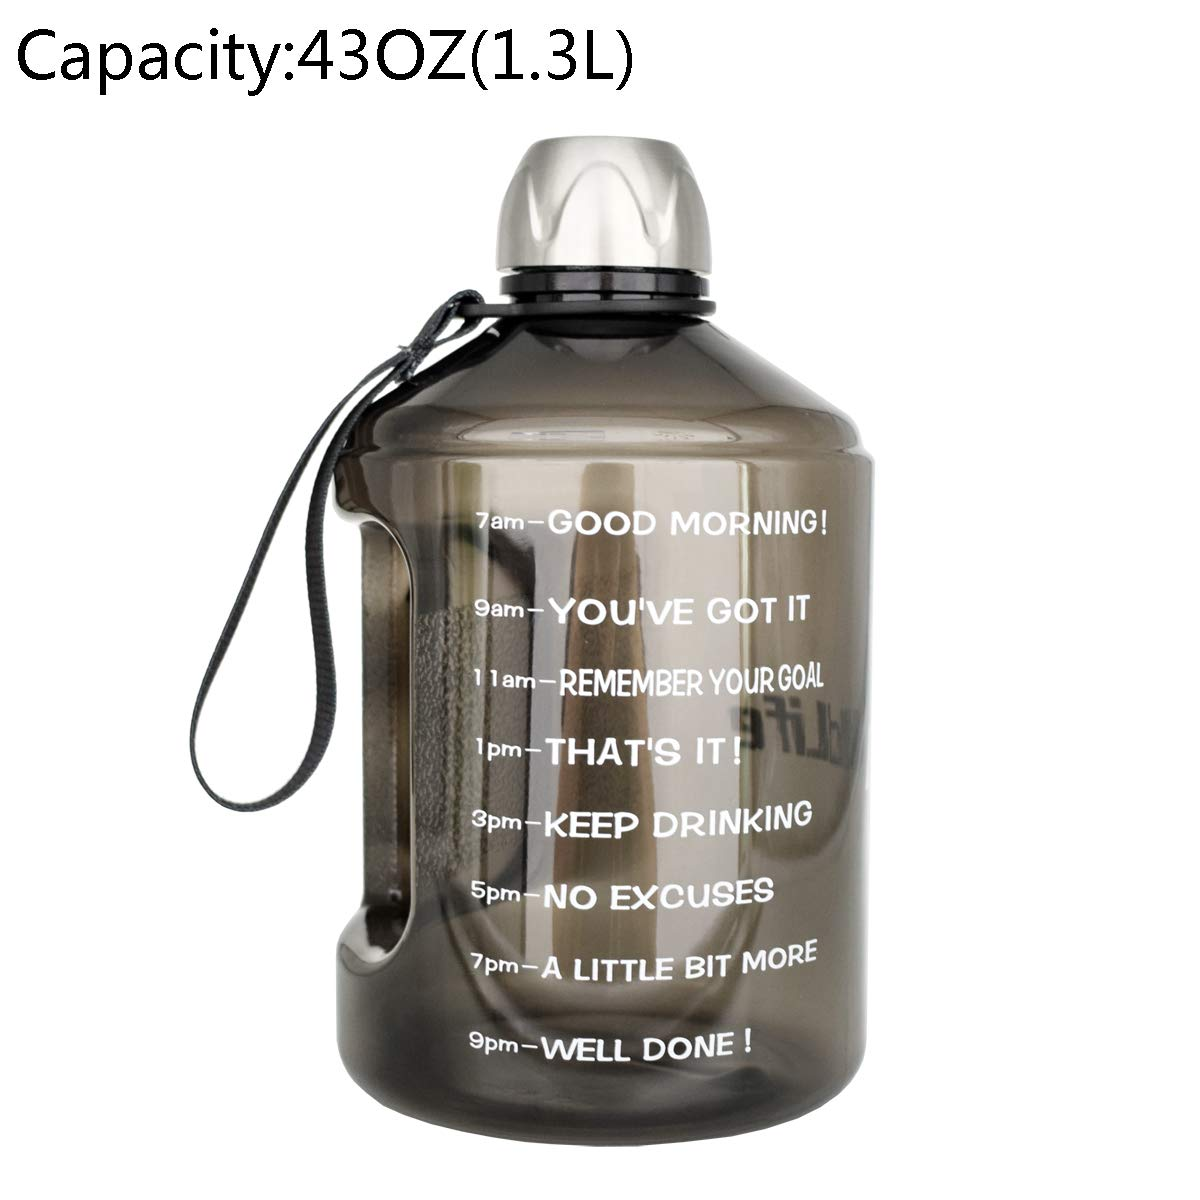 BuildLife 43OZ(1.3L) Water Bottle Motivational Fitness Workout with Time Marker  Drink More Water Daily   Clear BPA-Free  Water Throughout The Day for Child (1.3L-Black, 1.3L)